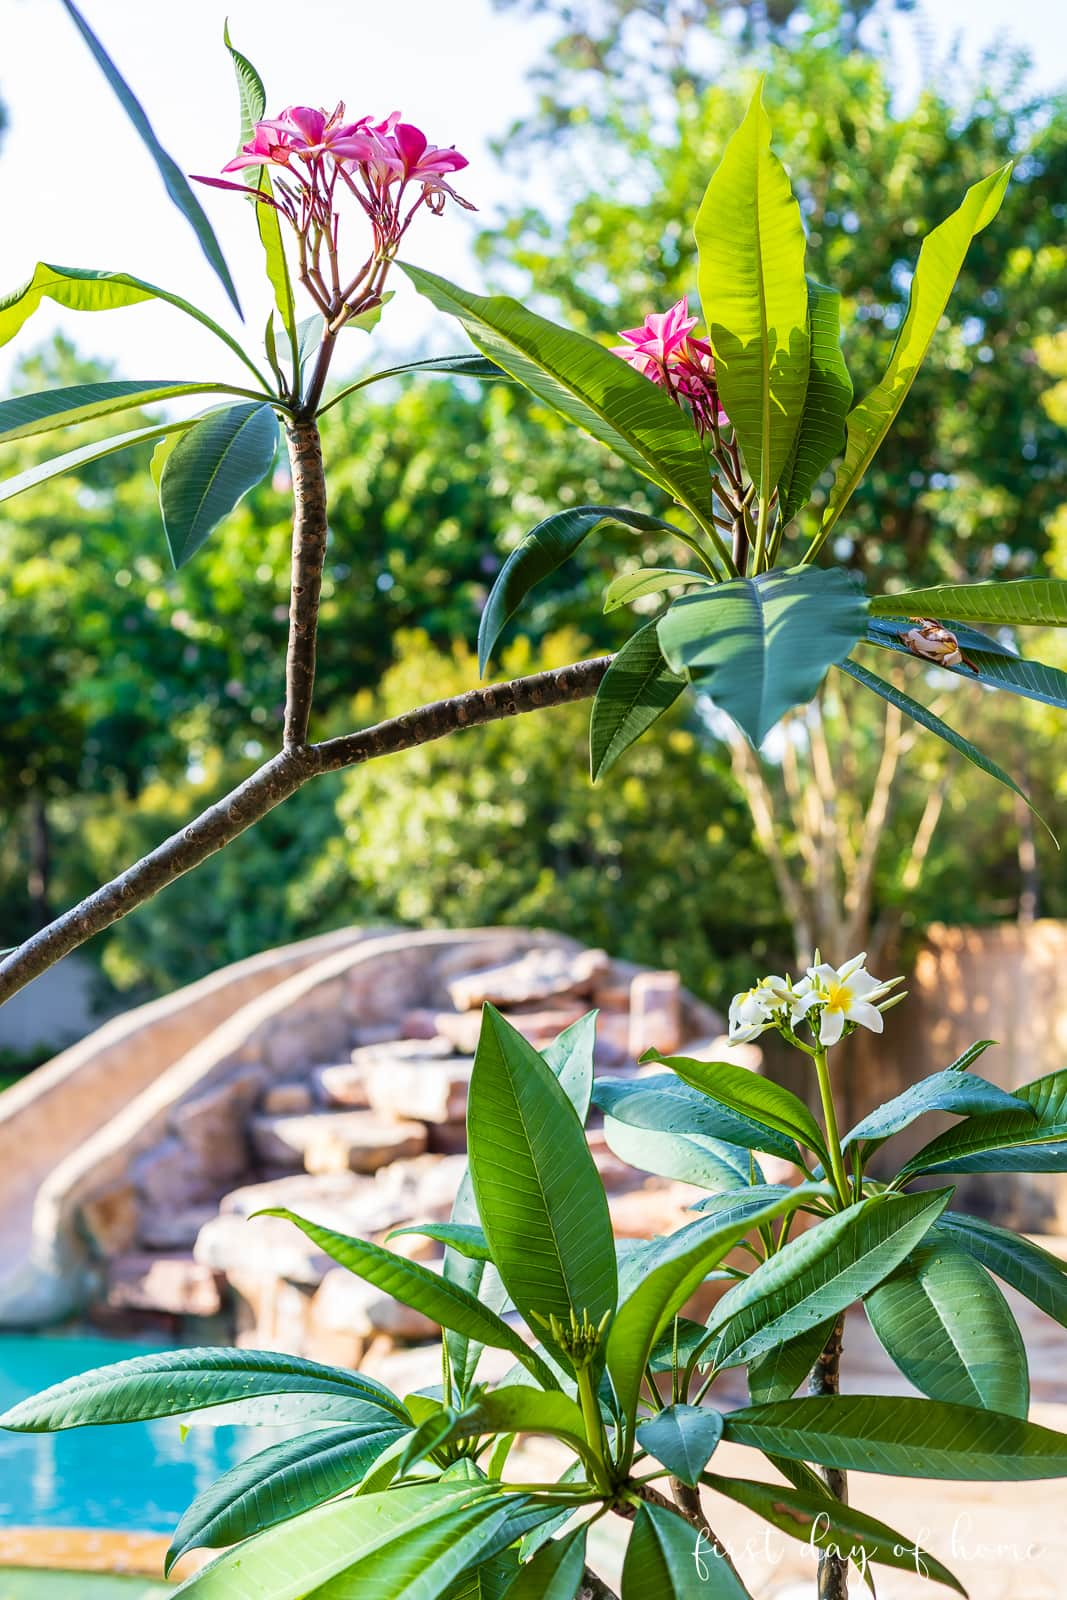 Plumeria plants by outdoor pool